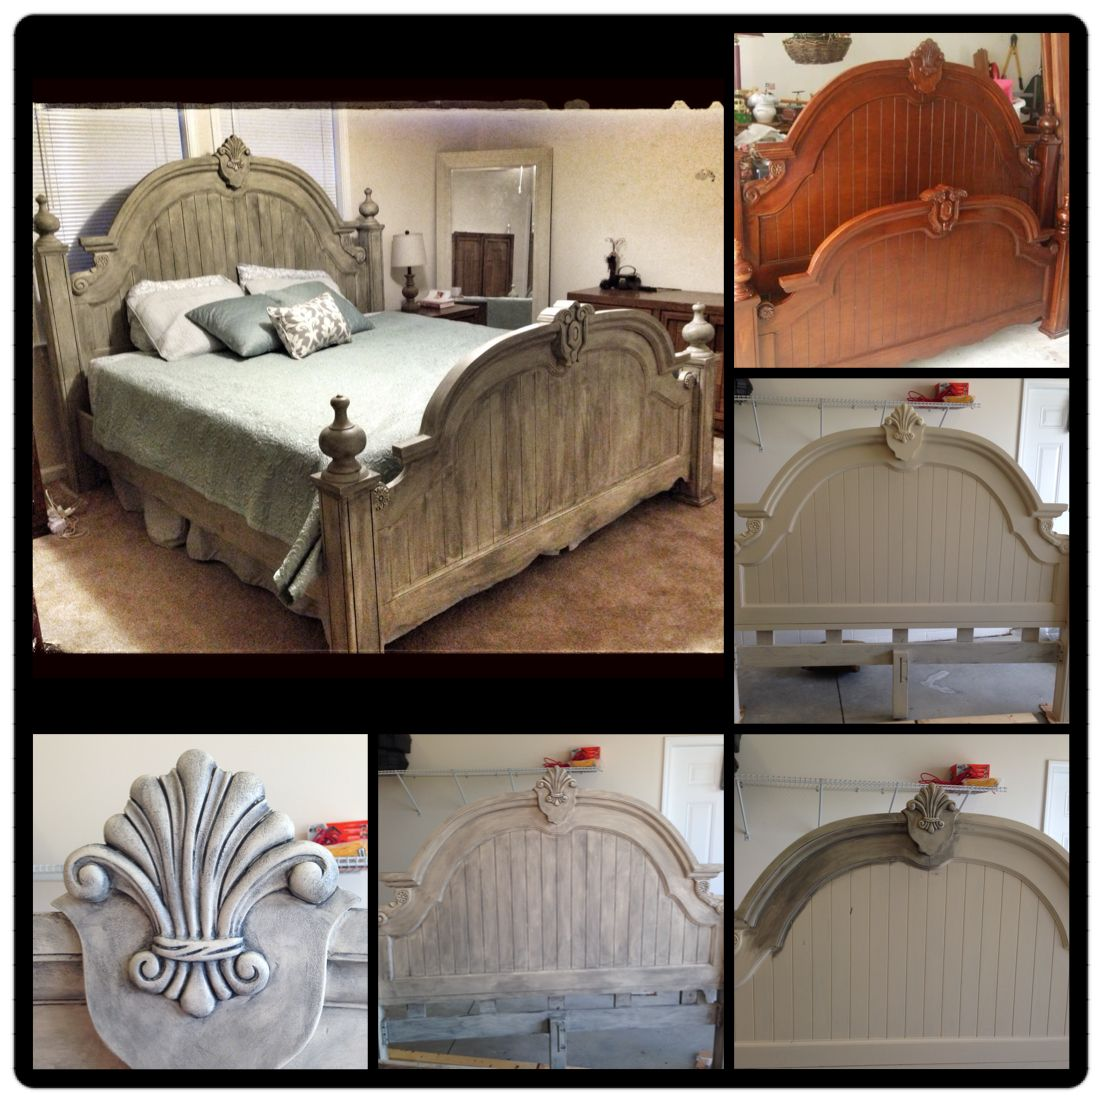 Upcycled bed annie sloan chalk paint old ochre with graphite and